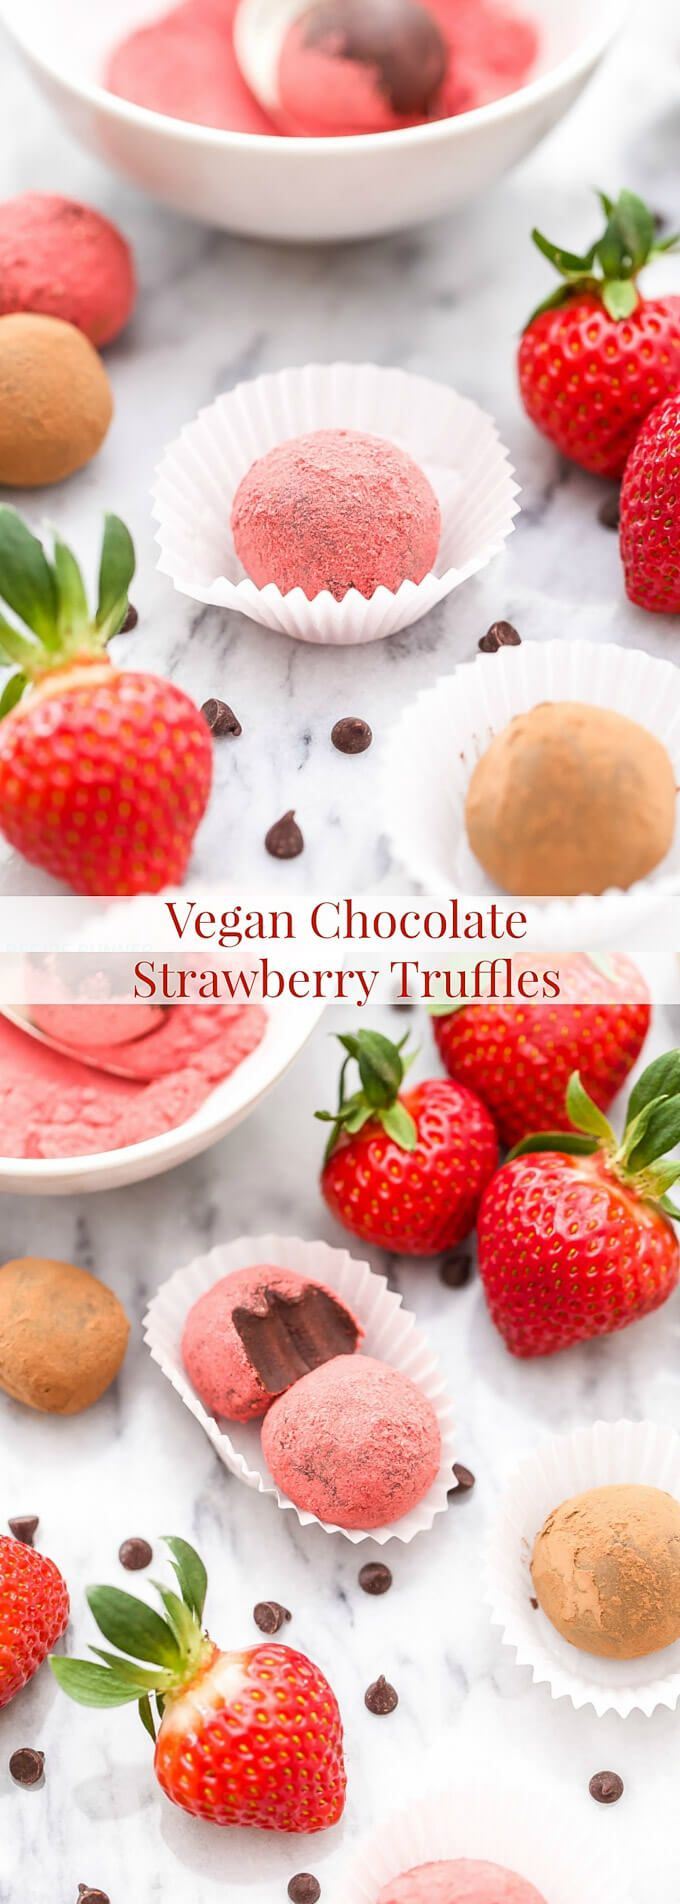 Four ingredients are all you need to make these easy Vegan Chocolate Strawberry Truffles! A wonderful balance of rich chocolate and sweet strawberries, perfect for Valentine's Day!